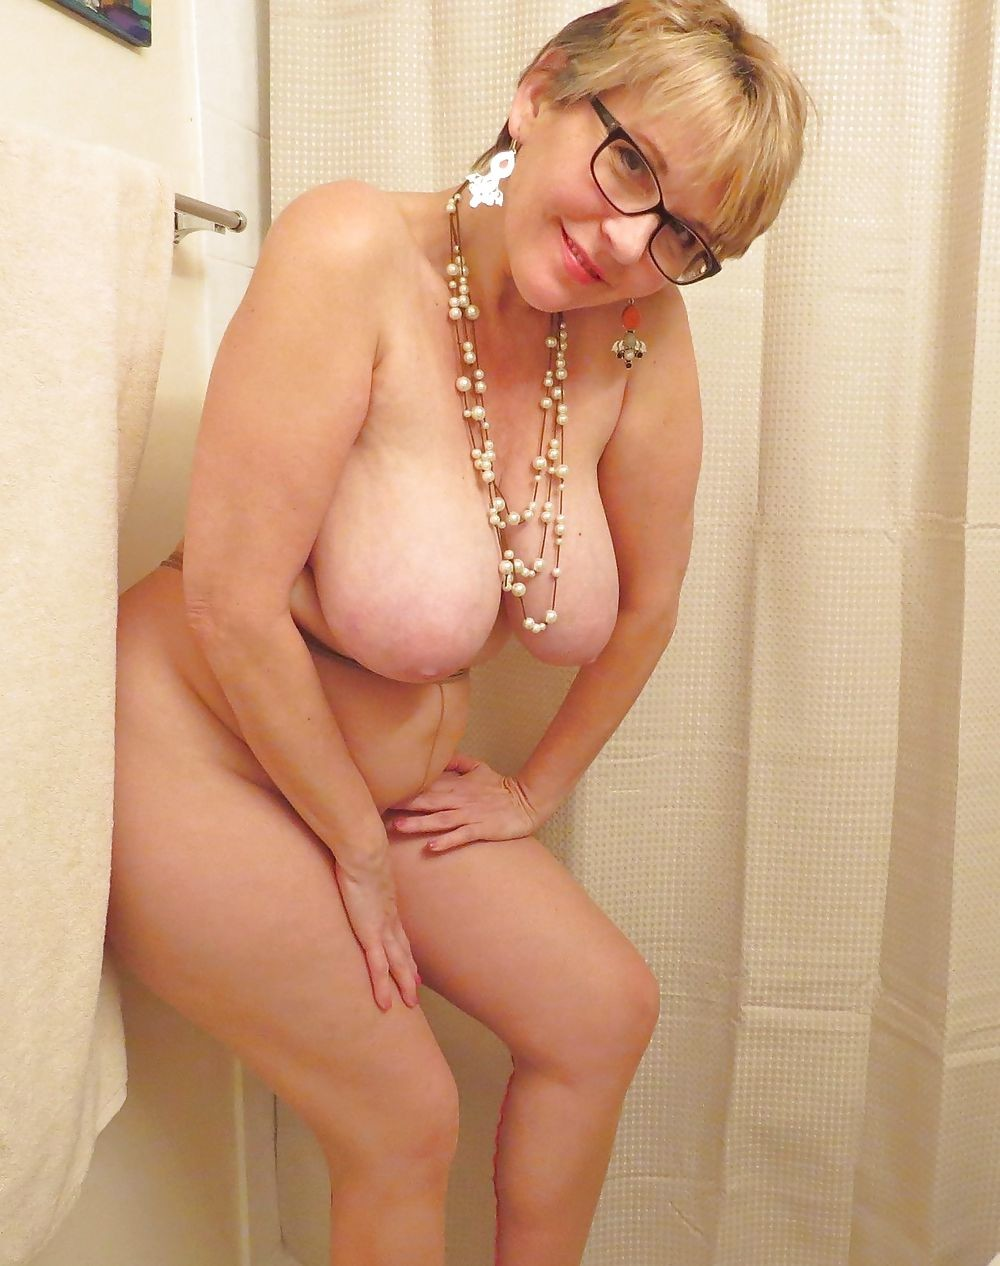 Blond big natural boobs nipples shaved puffy cameltoe pussy 3